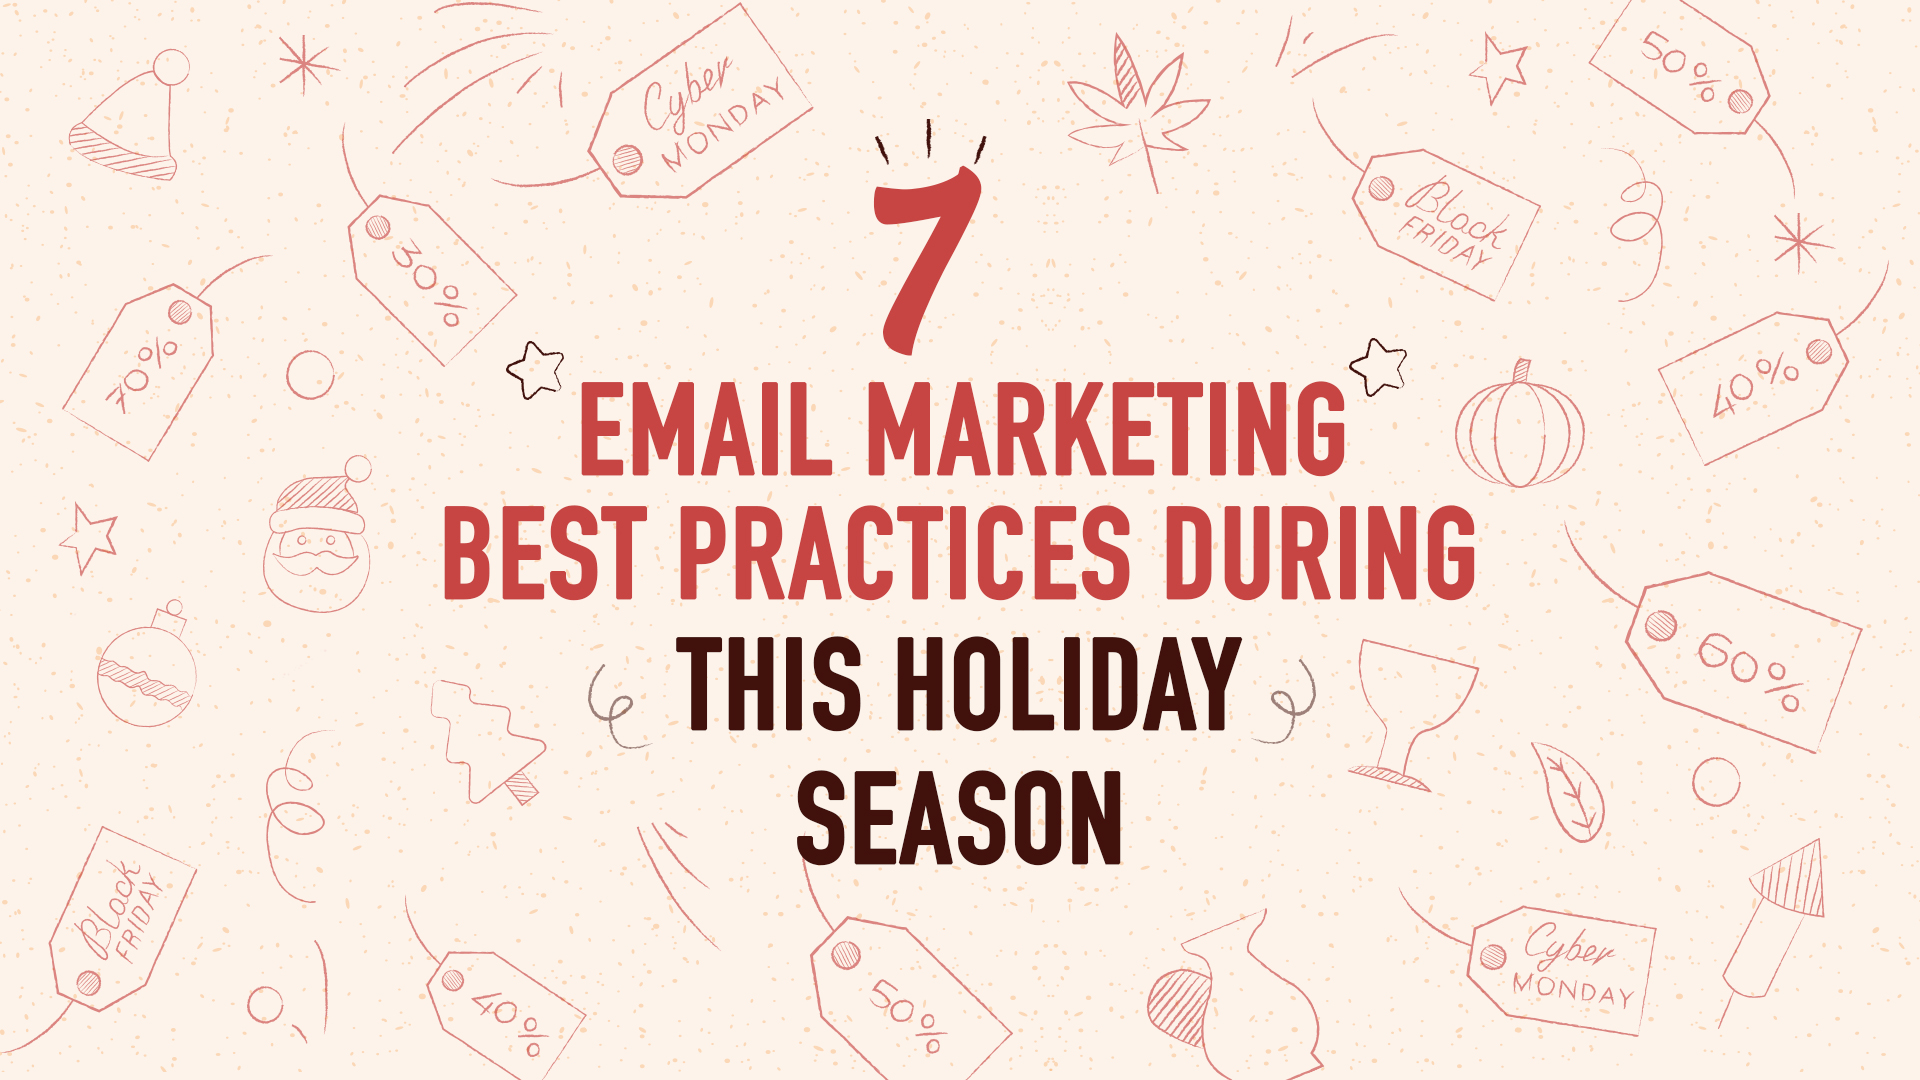 7 Email marketing best practices for the holiday season